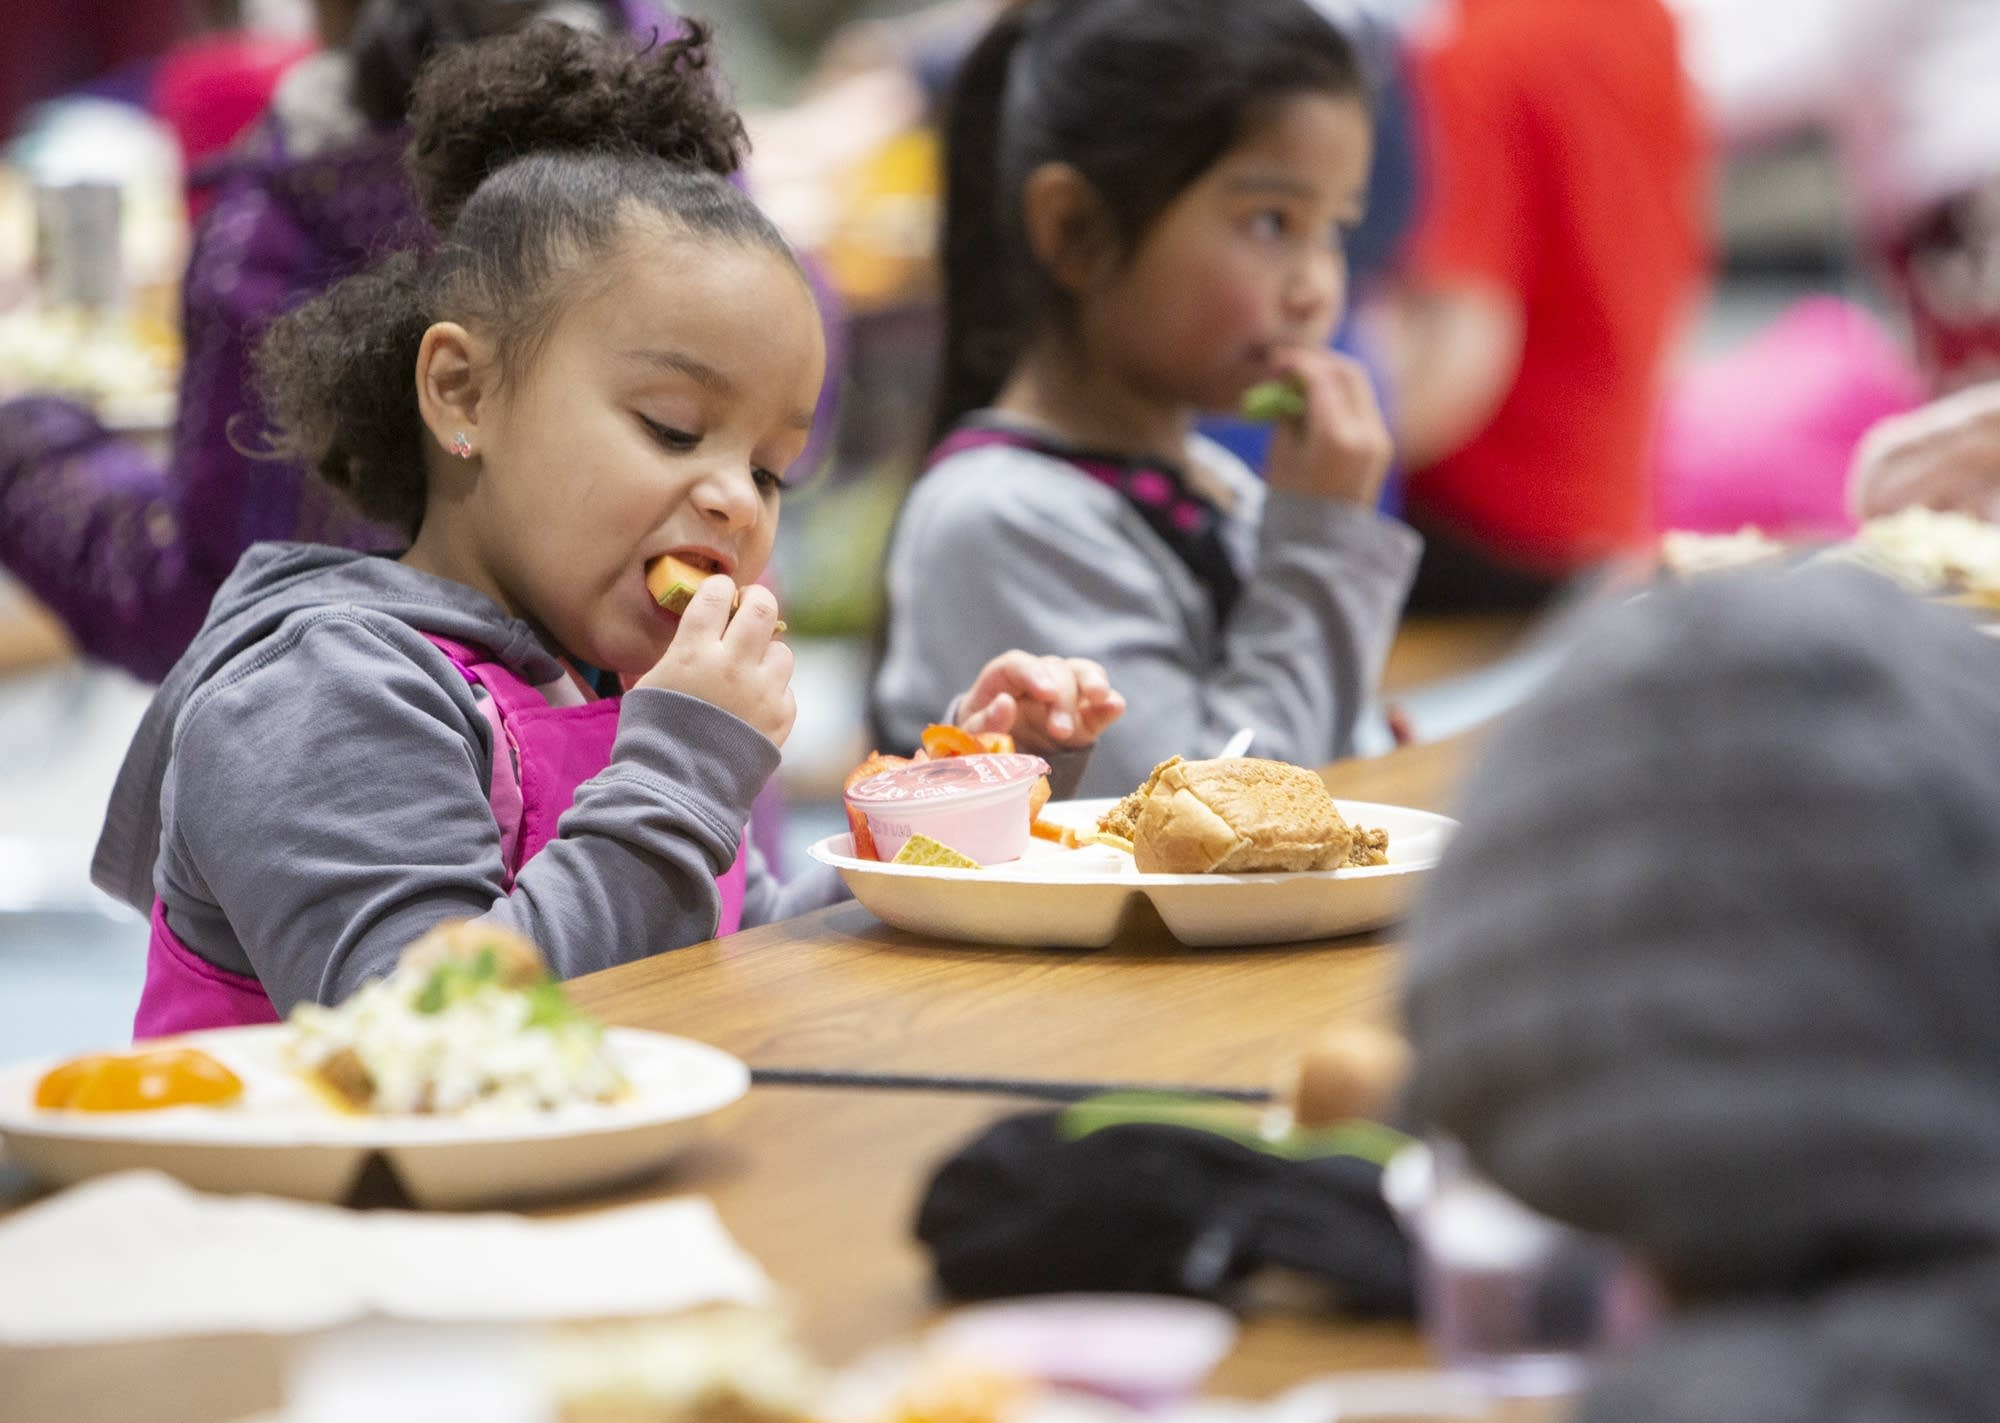 Kindergartner Tamryn eats cantaloupe during lunch.